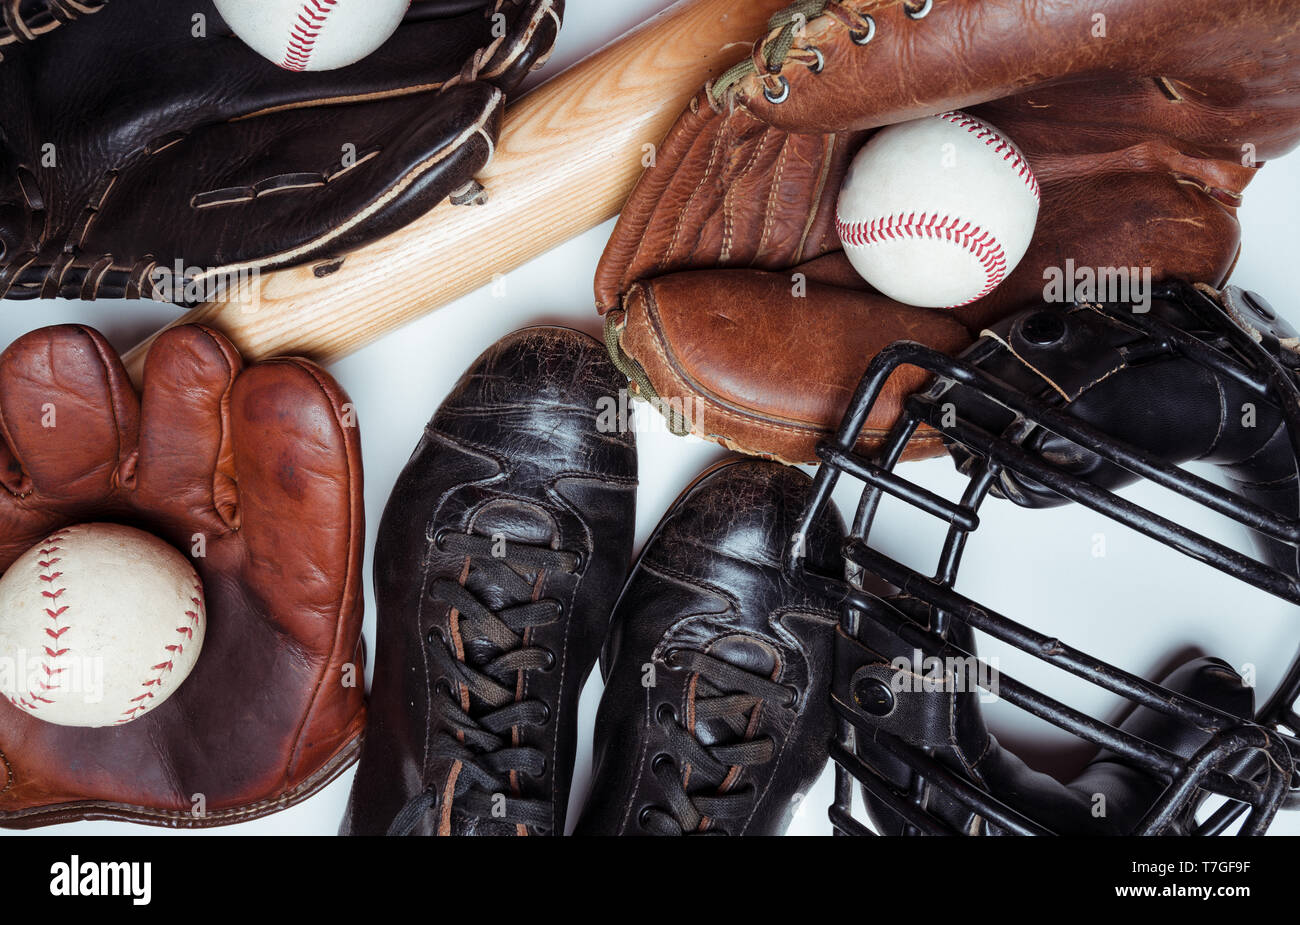 Vintage and modern baseball equipment including bats, balls gloves and face mask on a white background - Stock Image